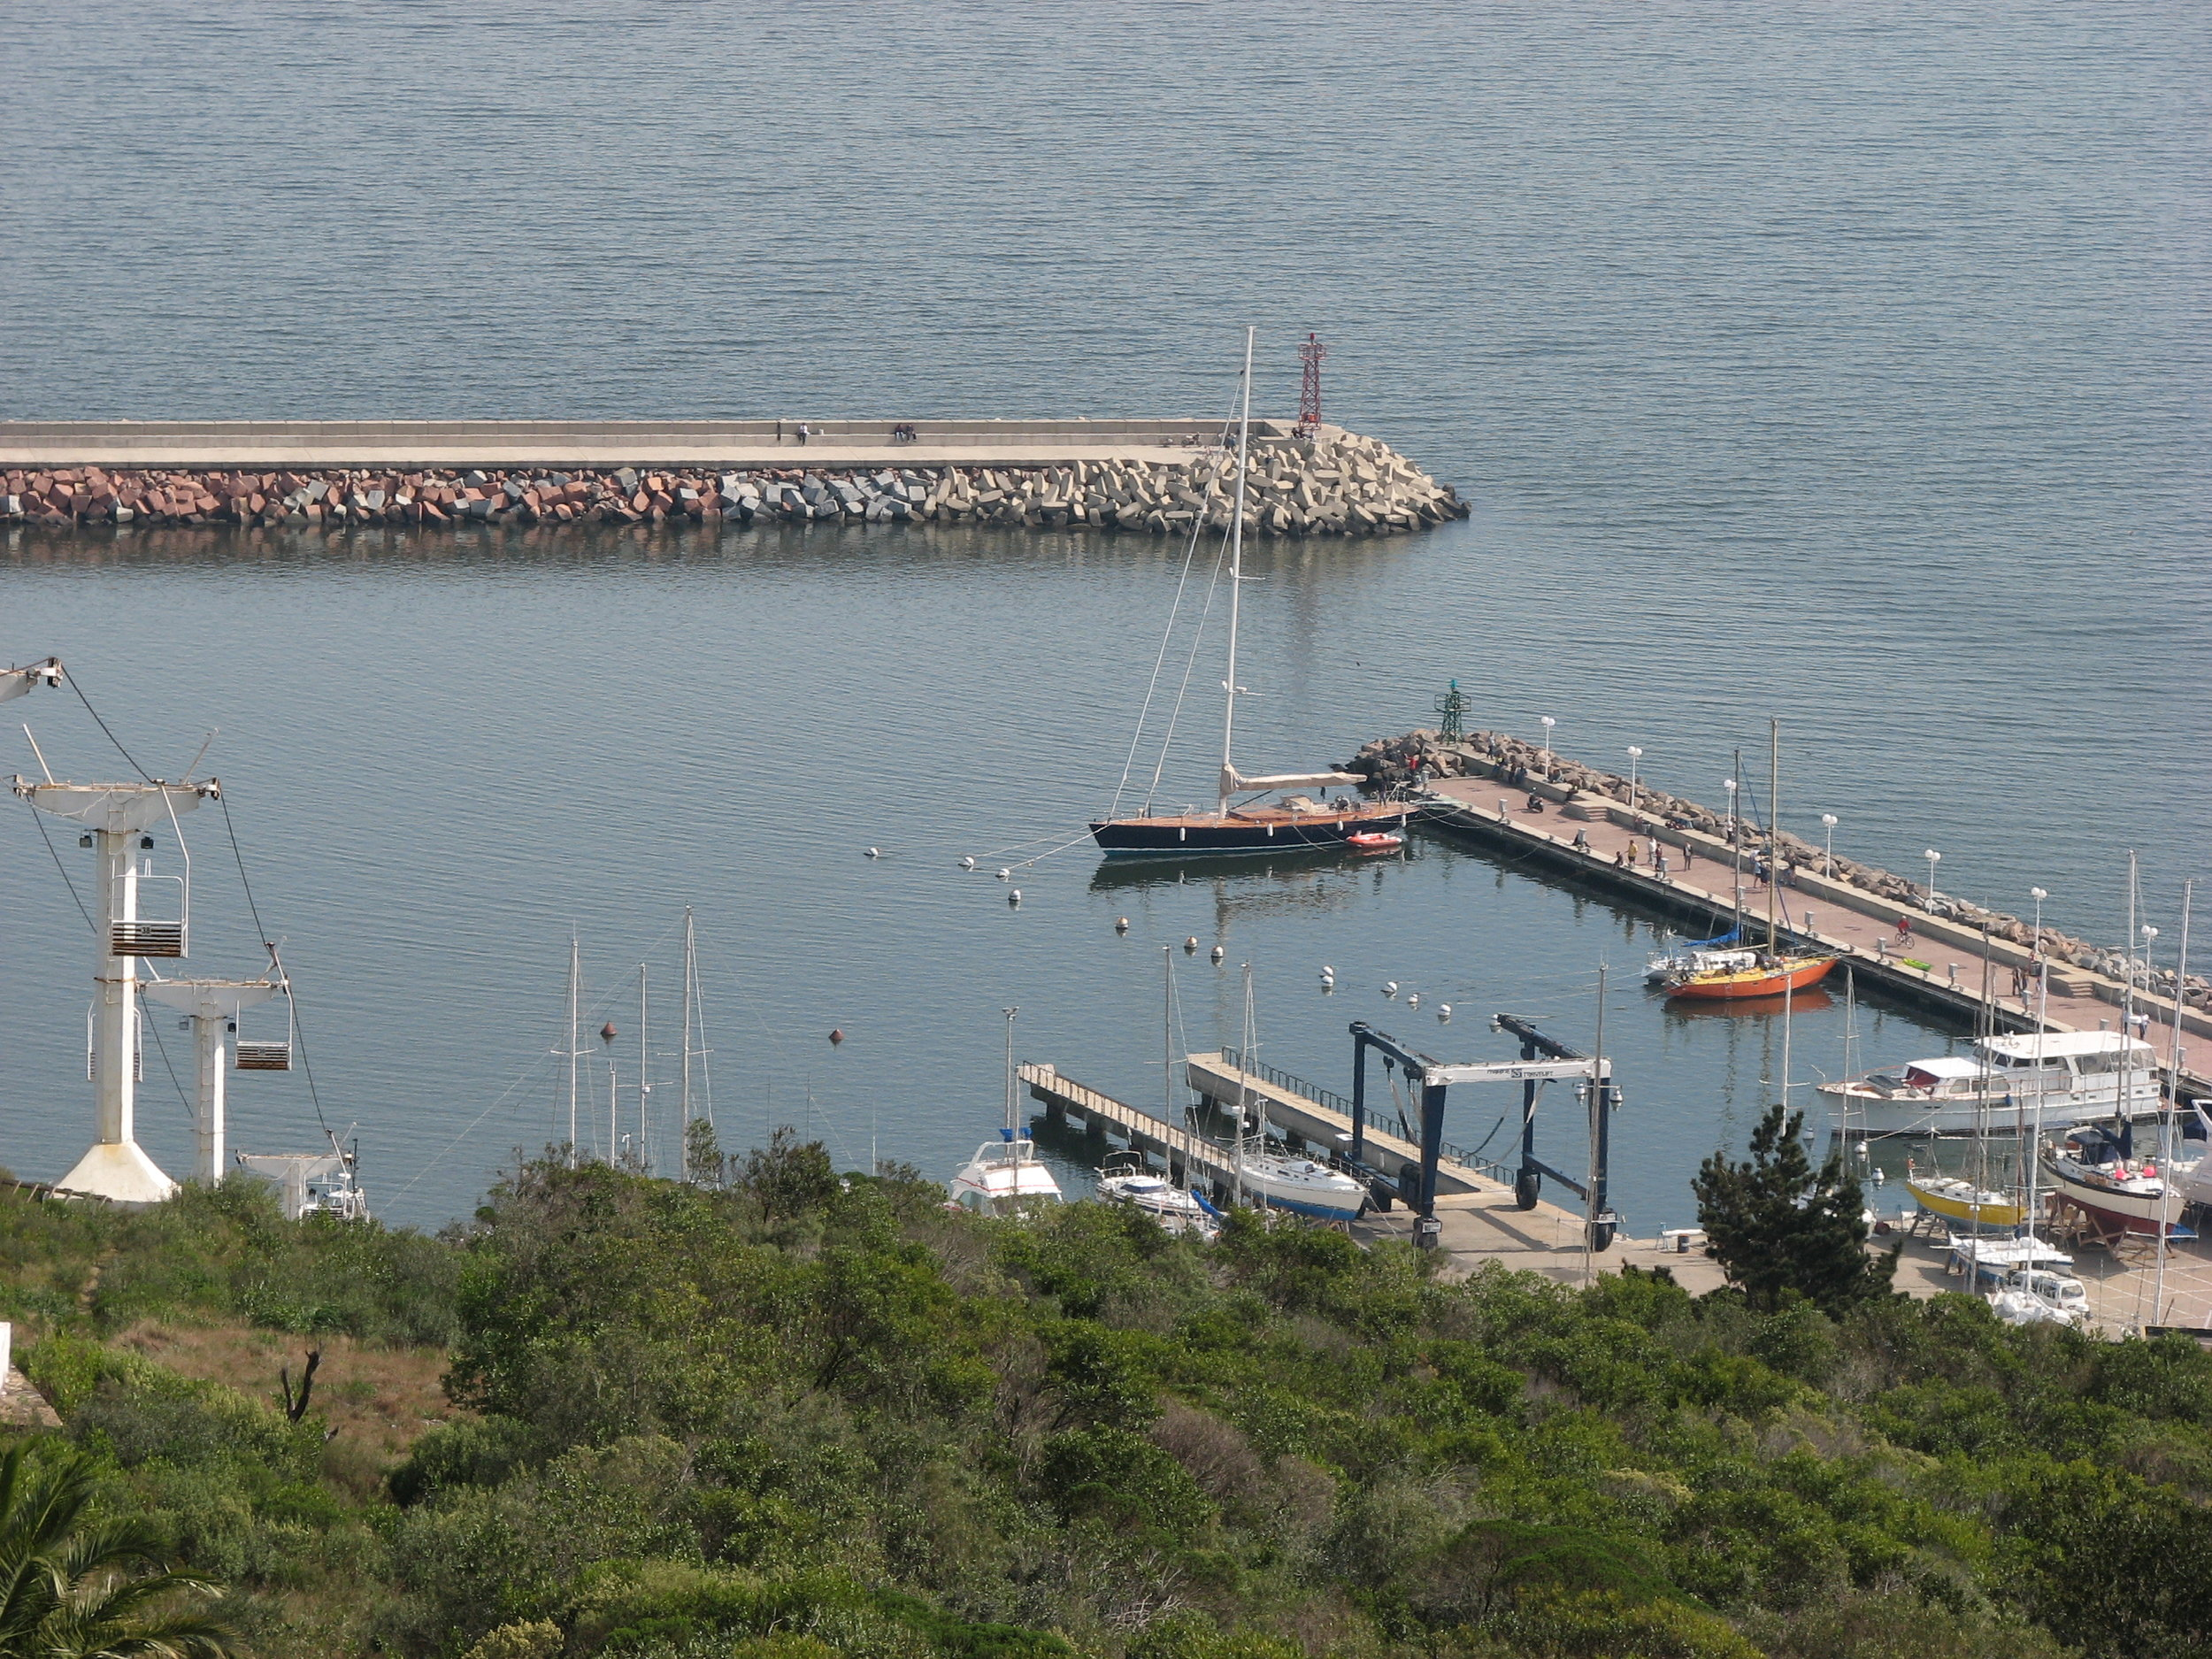 The marina in Piriapolis, Uruguay was just perfect for a pair of weary sailors!